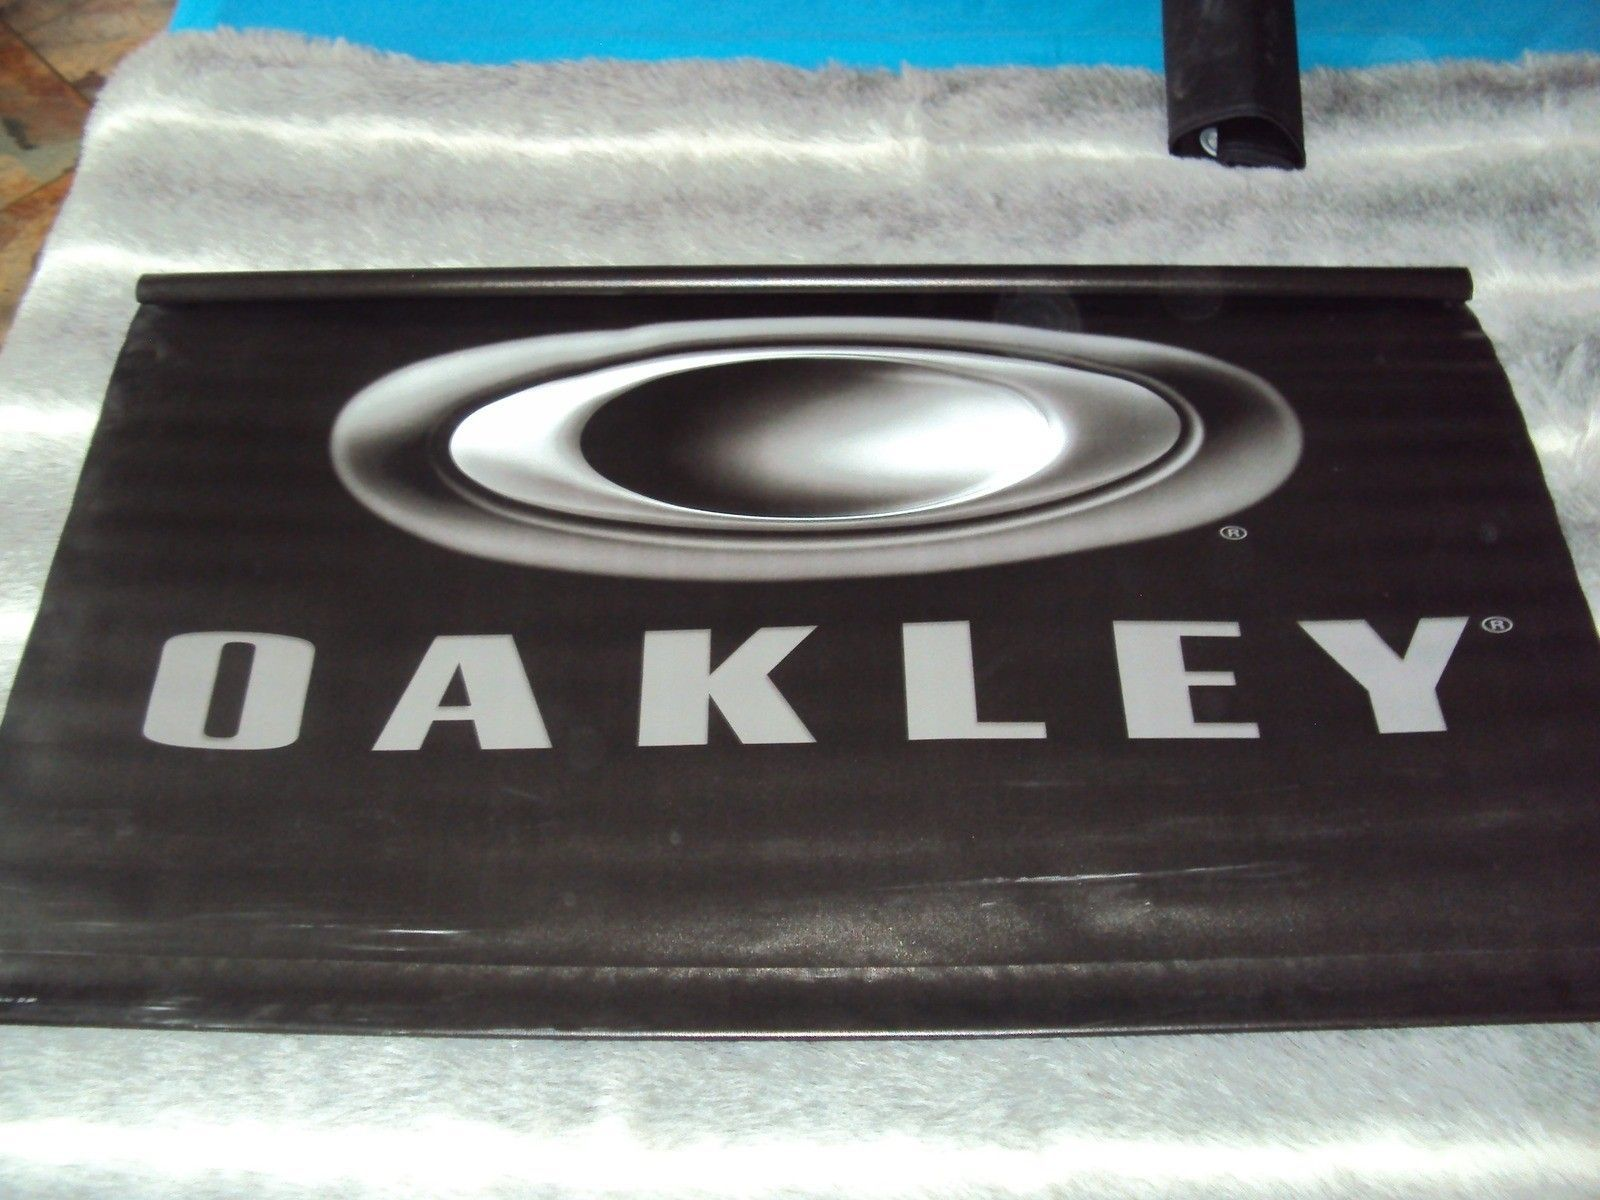 Oakley Frames And Cardboard Displays - 1347395882587.jpg